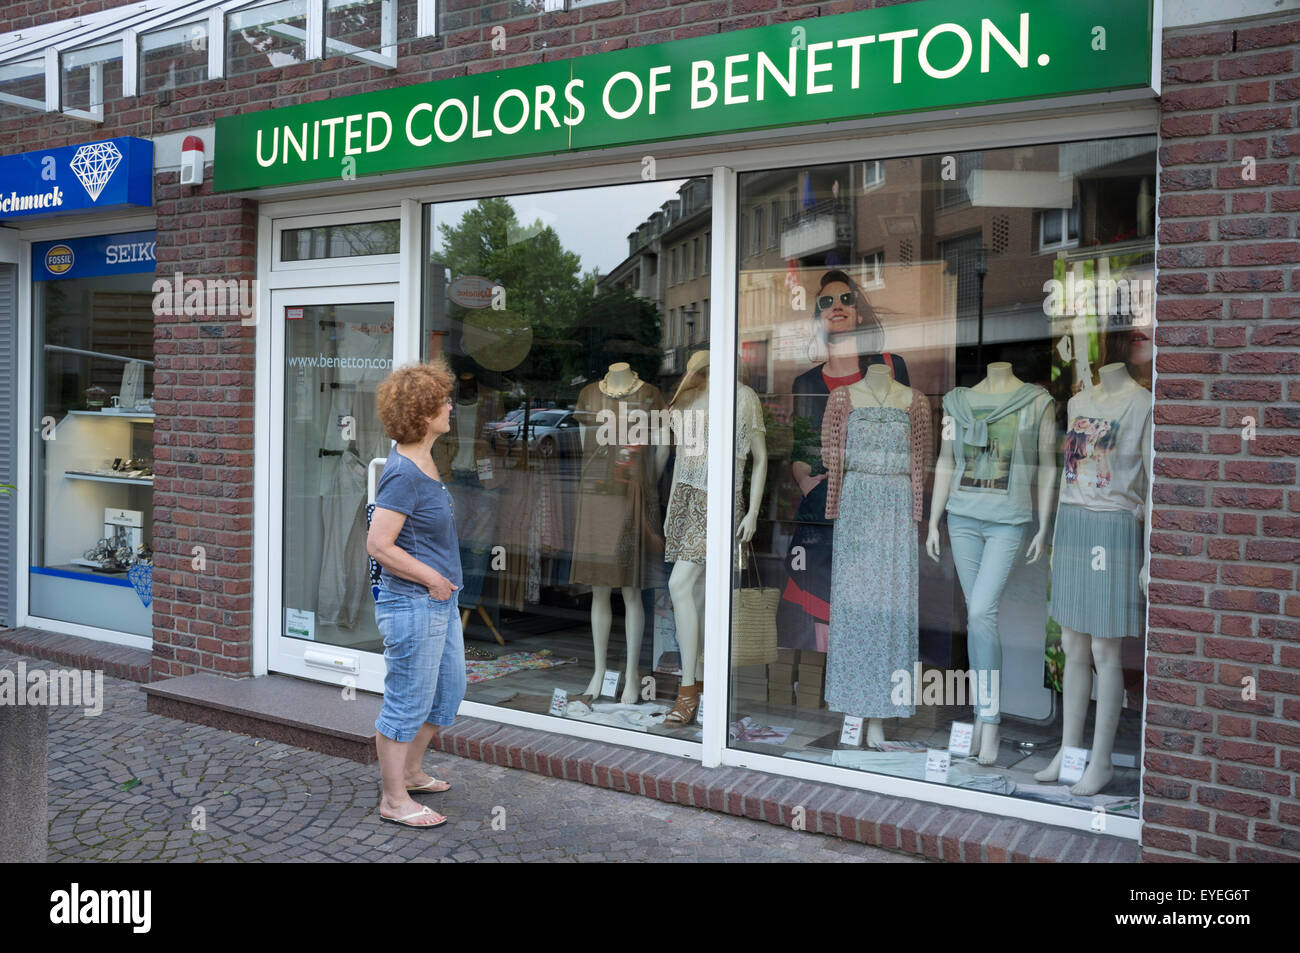 United colors of Benetton clothes shop - Stock Image